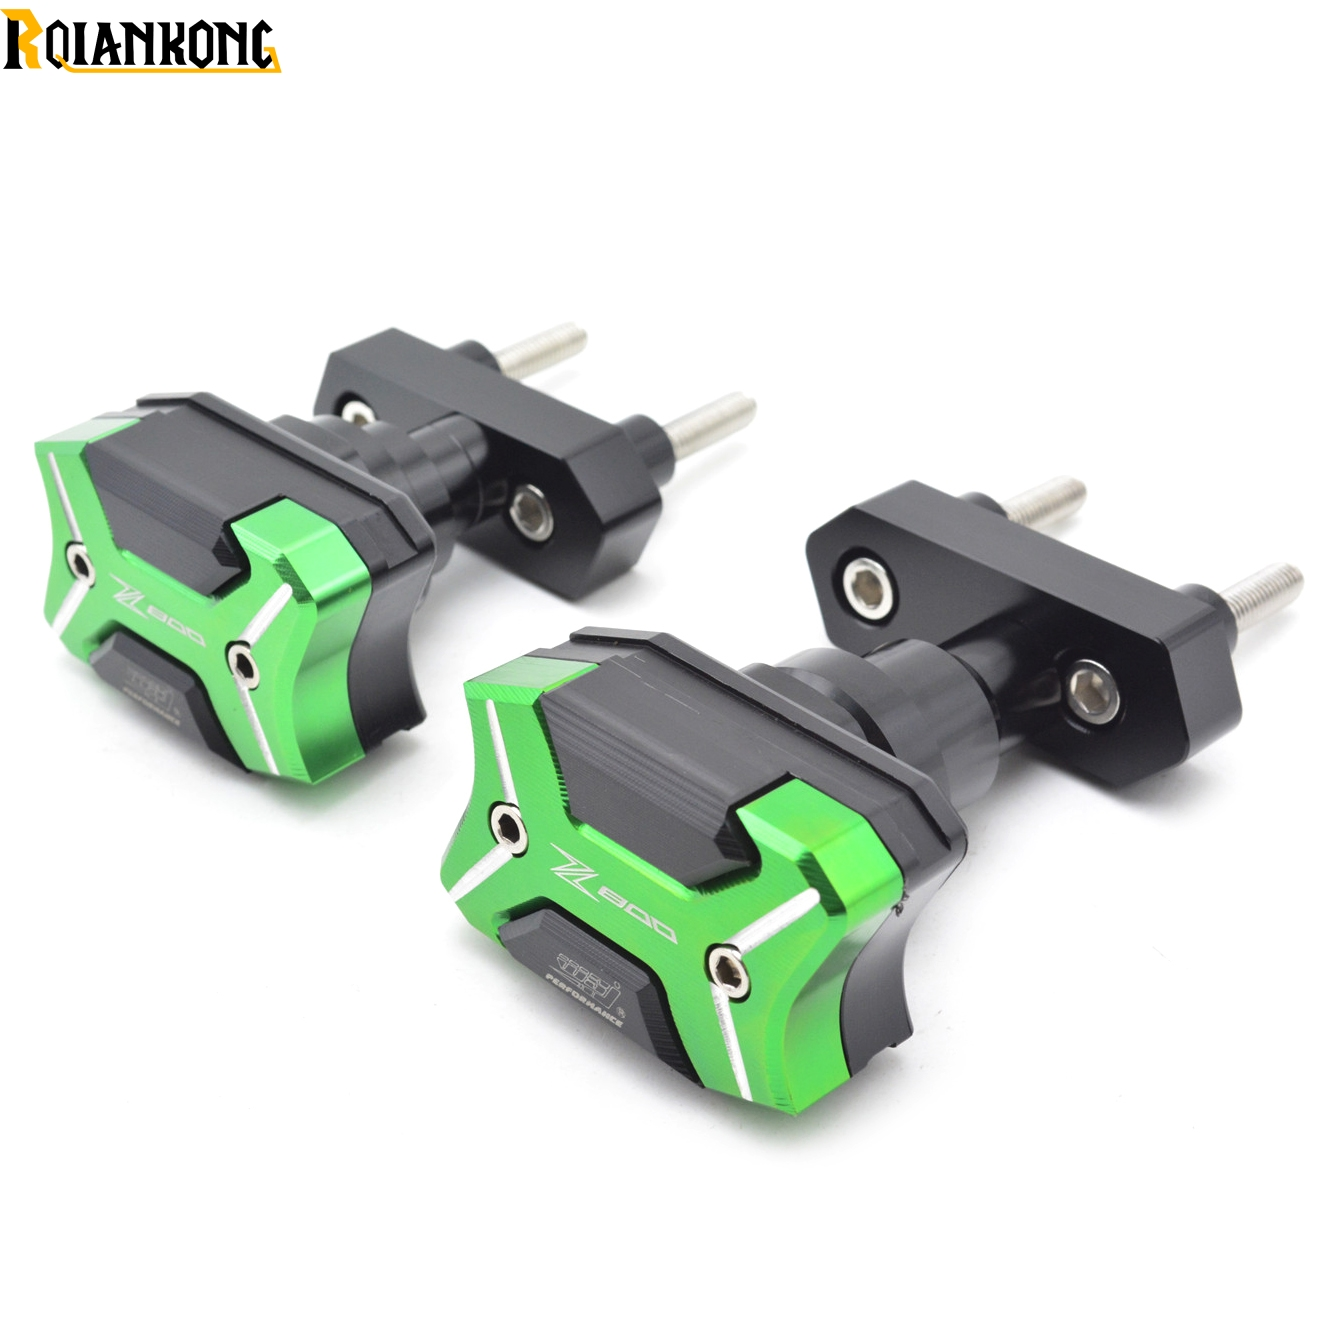 Motorcycle Frame Crash Pads Engine Case Sliders Falling Protector For Kawasaki Z800 ZR800 Z ZR 800 with Z800 laser mark Green motorcycle cnc crash pads frame sliders protector for kawasaki z800 z 800 2013 2014 black